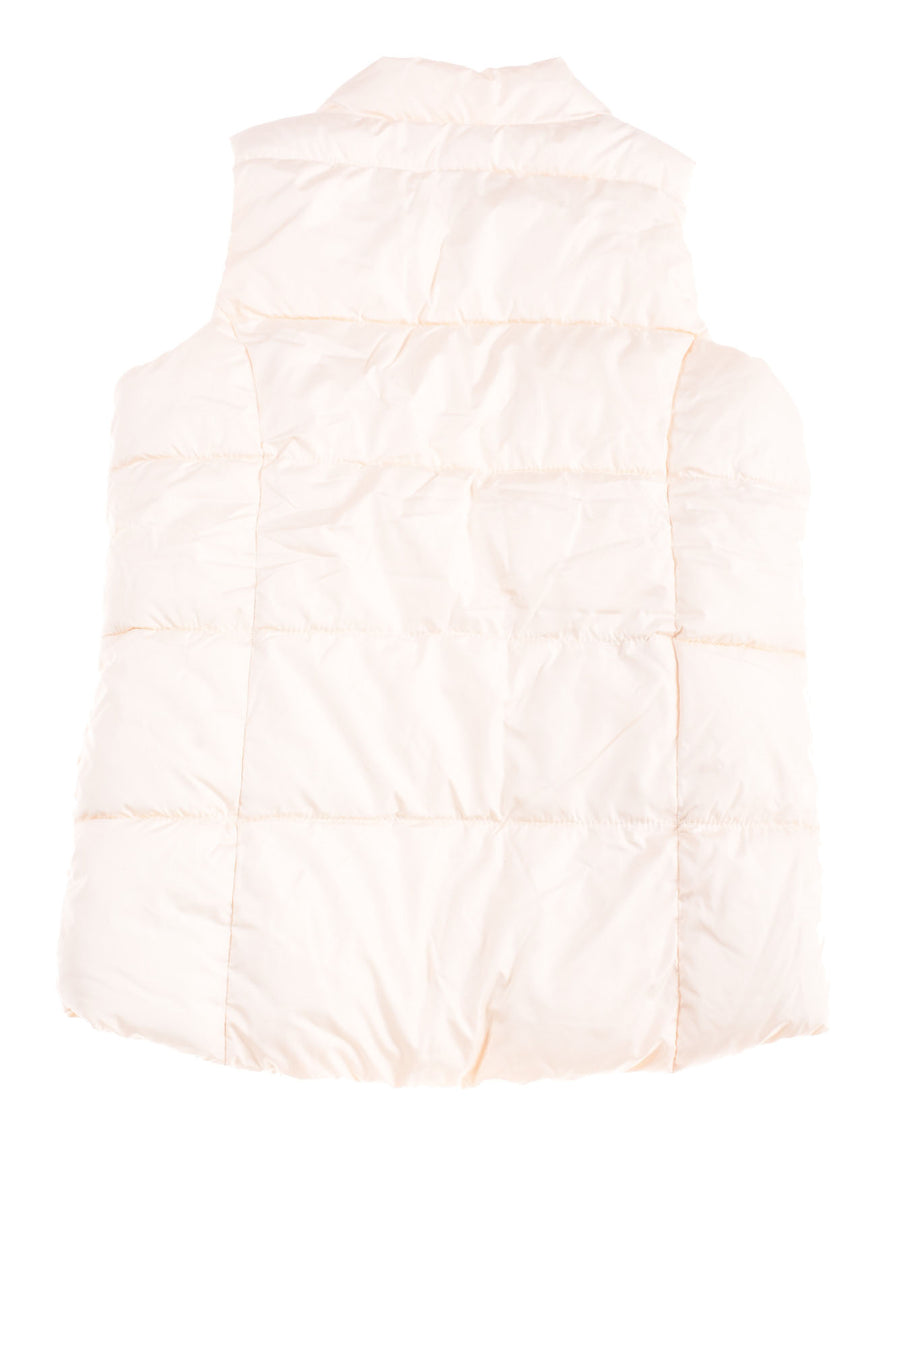 NEW Old Navy Girl's Vest X-Large Cream